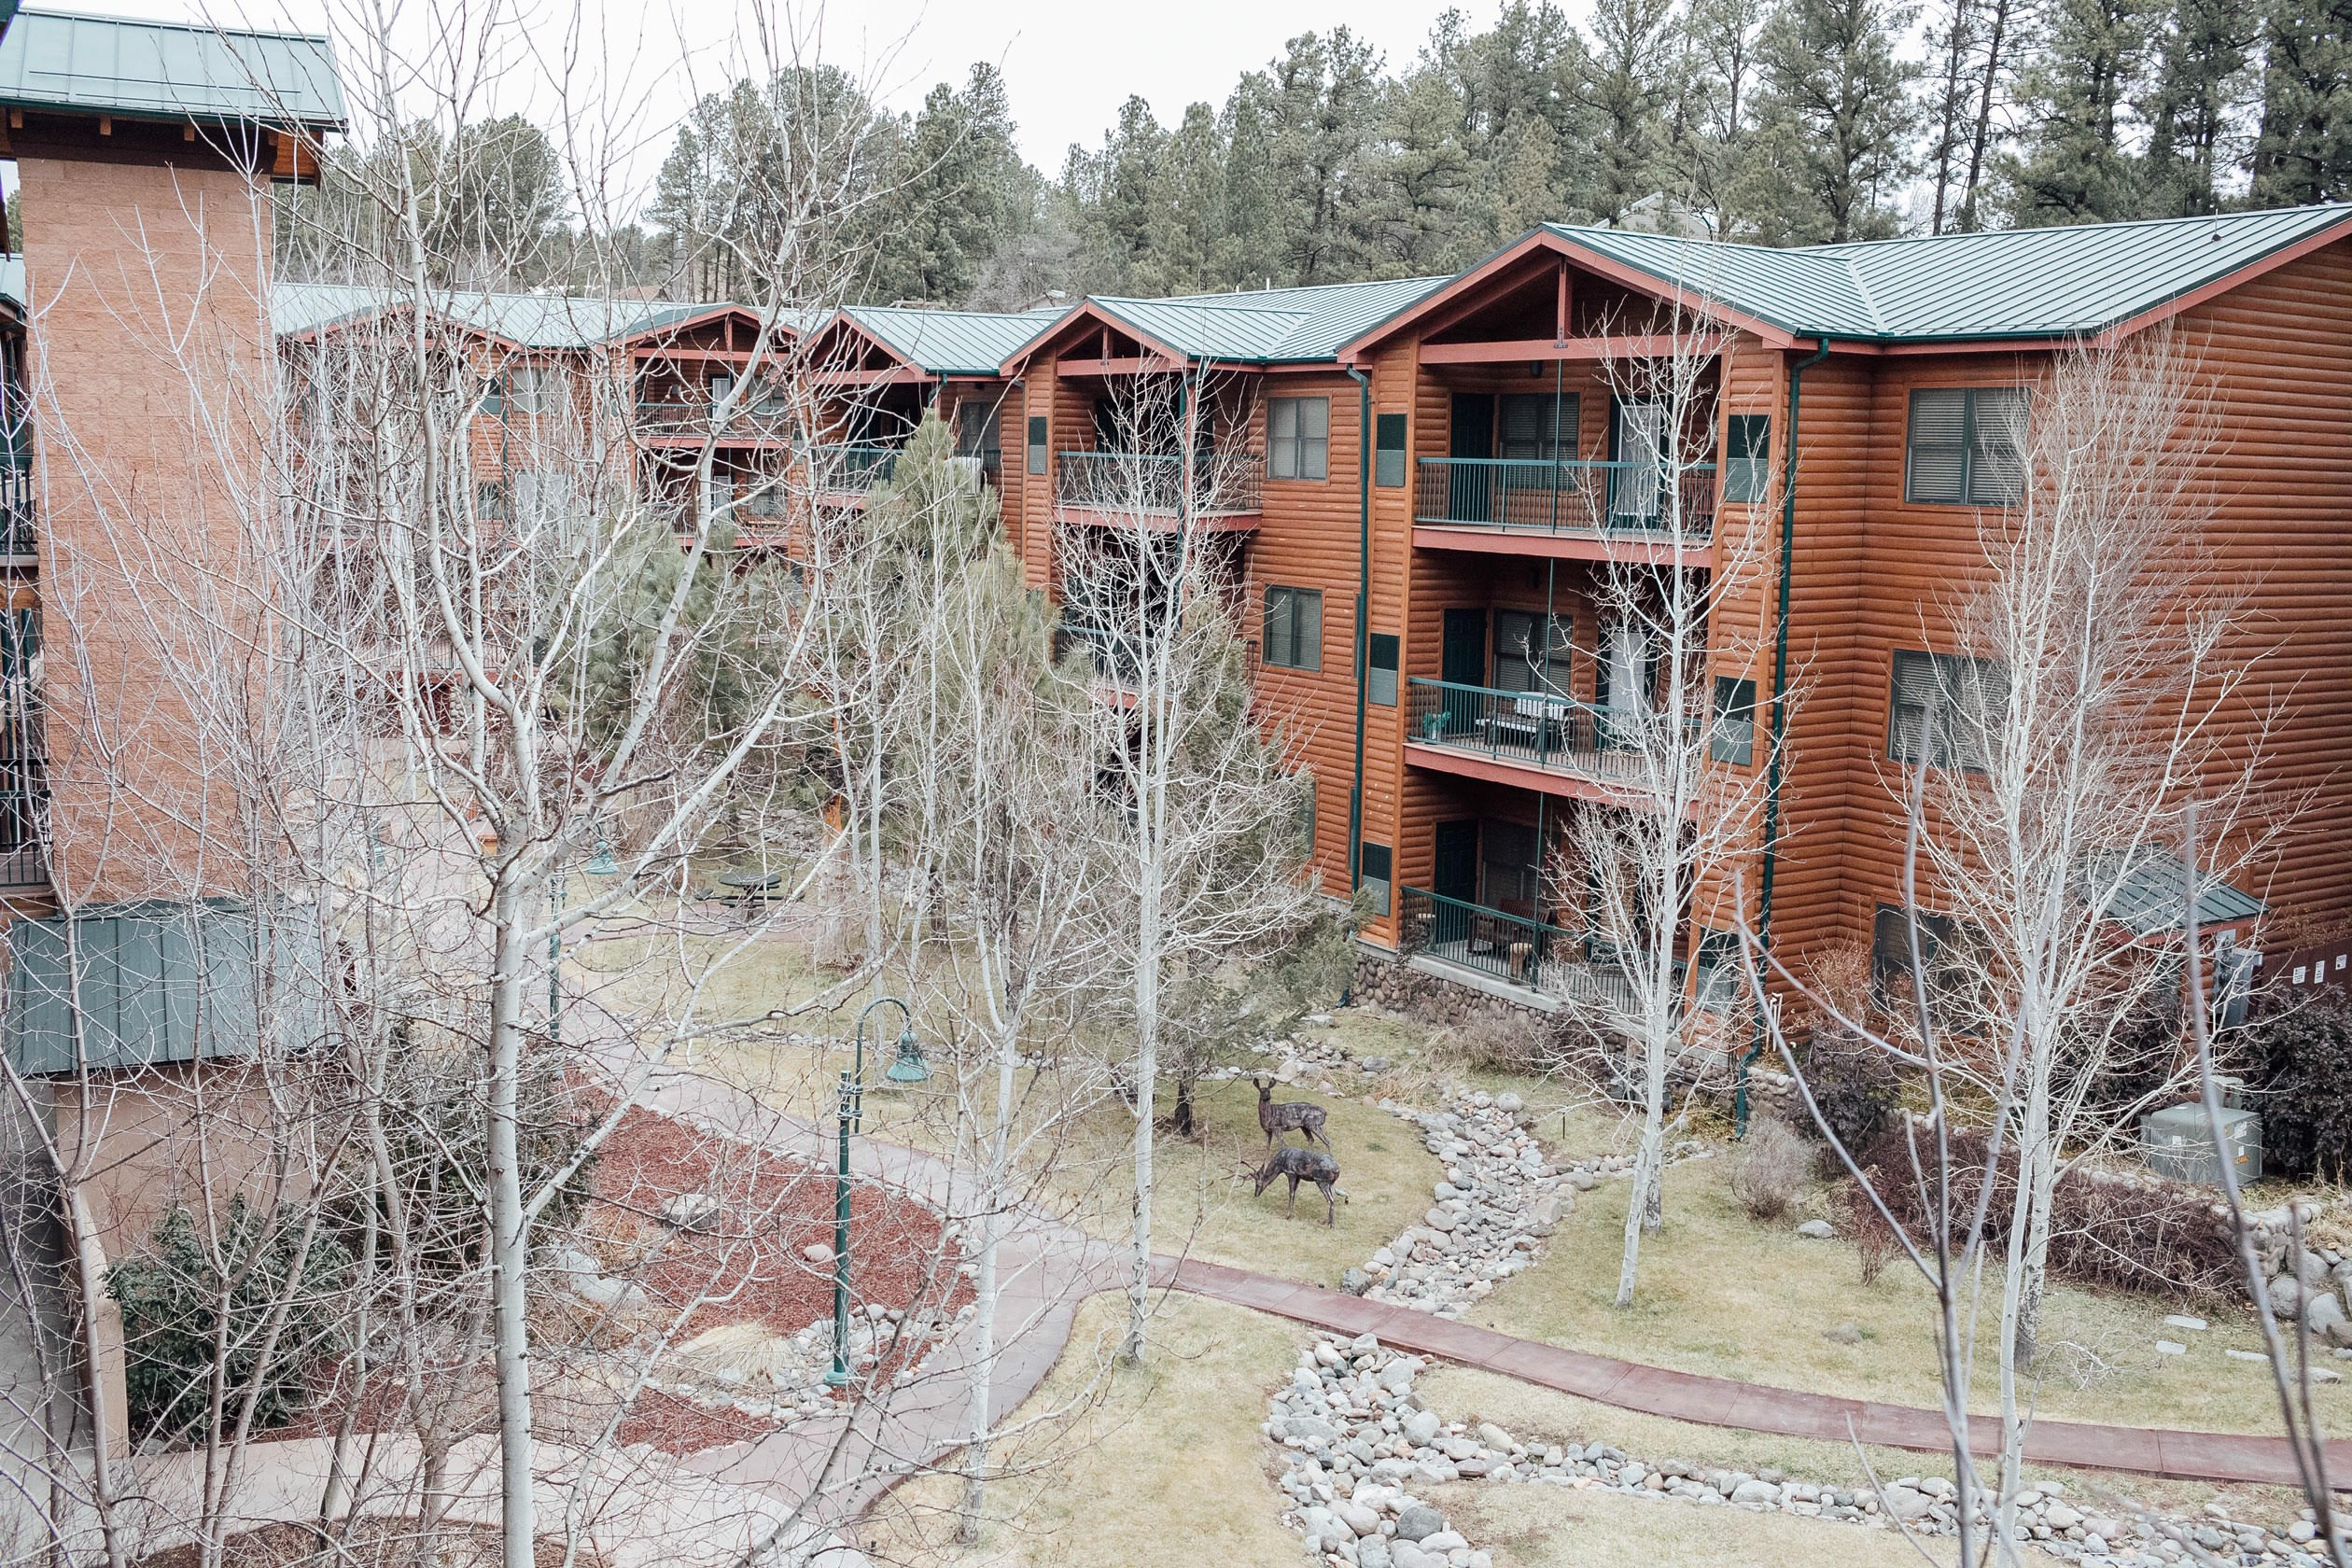 The Best Things to Do in Ruidoso, NM in Winter featured by top US travelb log, Walking in Memphis in High Heels: stay at the Ruidoso River Resort